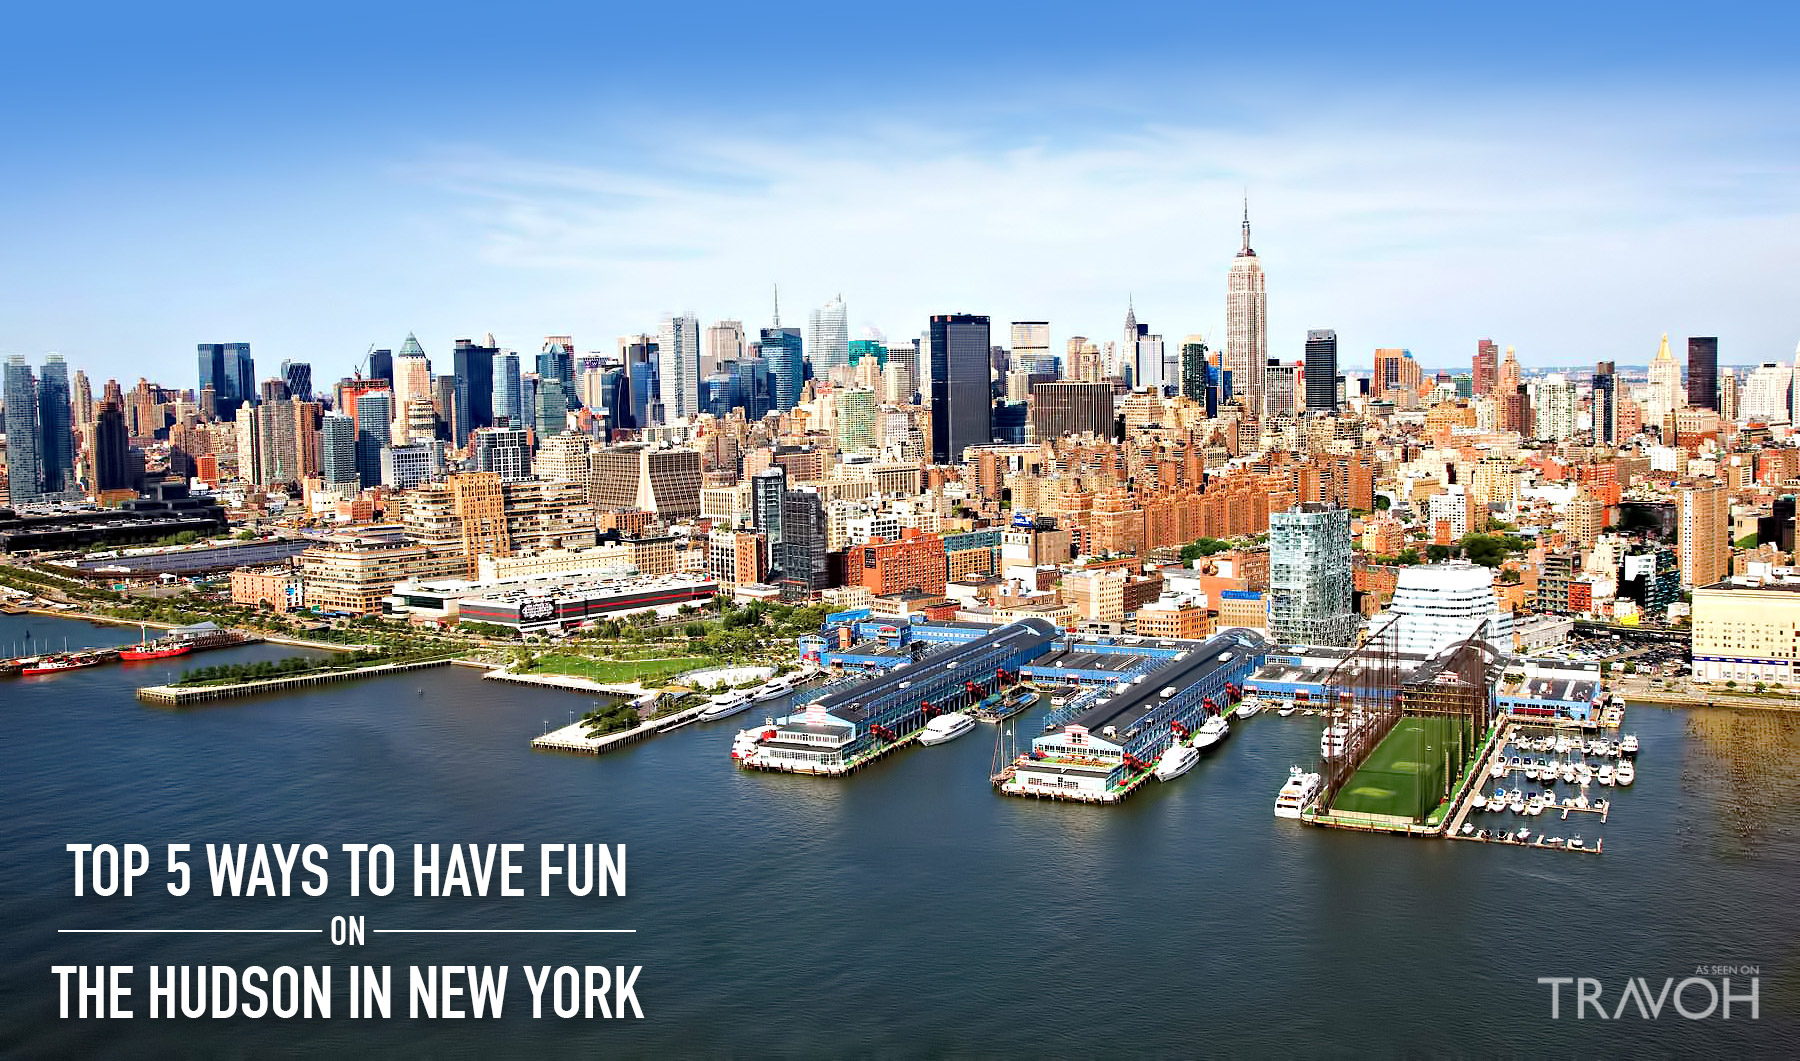 The Top 5 Ways to Have Fun on the Hudson in New York